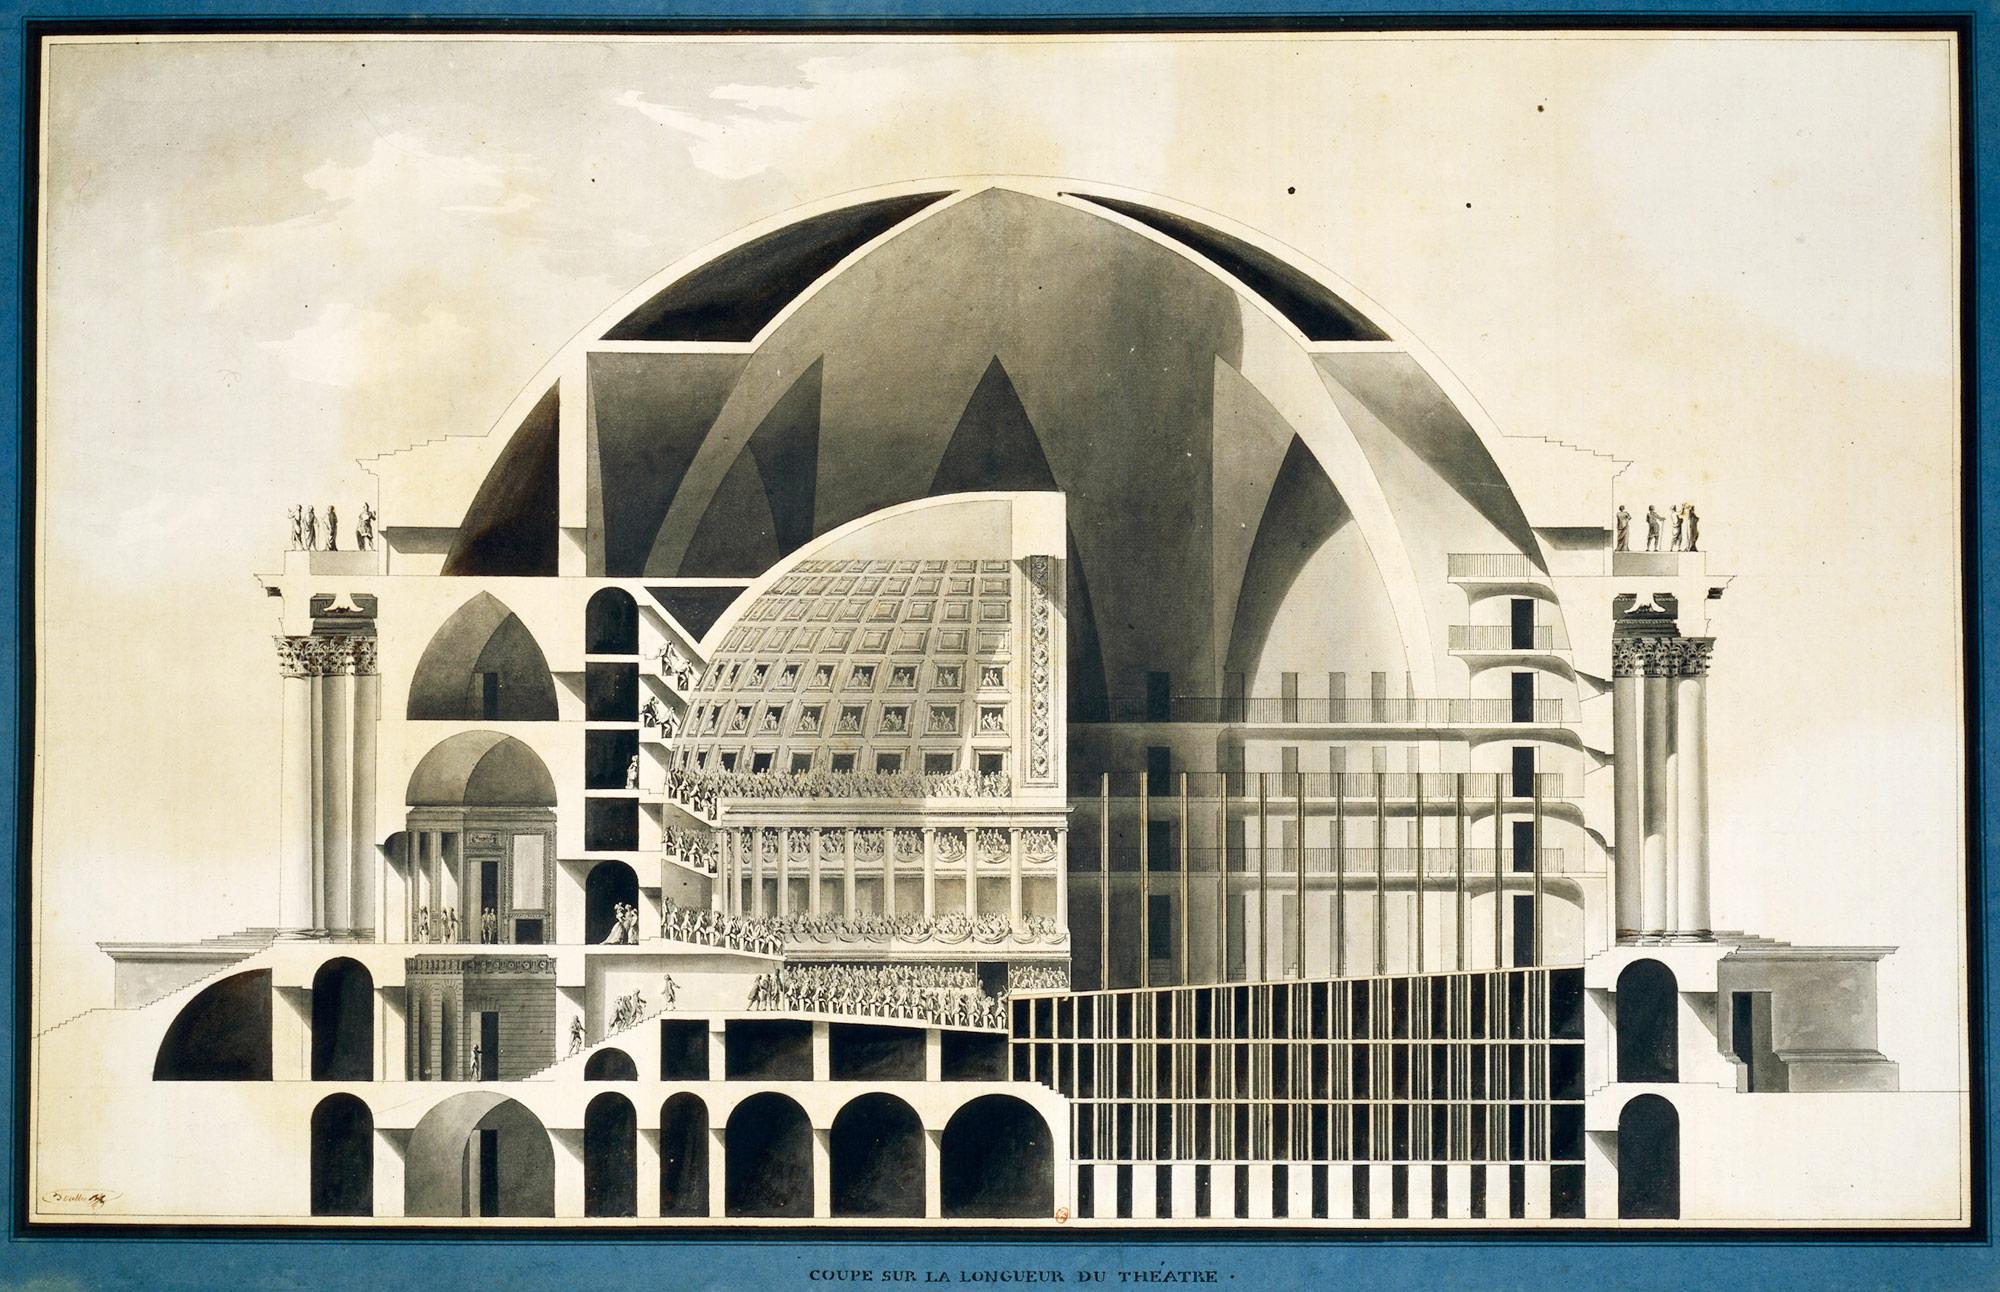 Etienne-Louis Boullee, 18th century french speculative architect